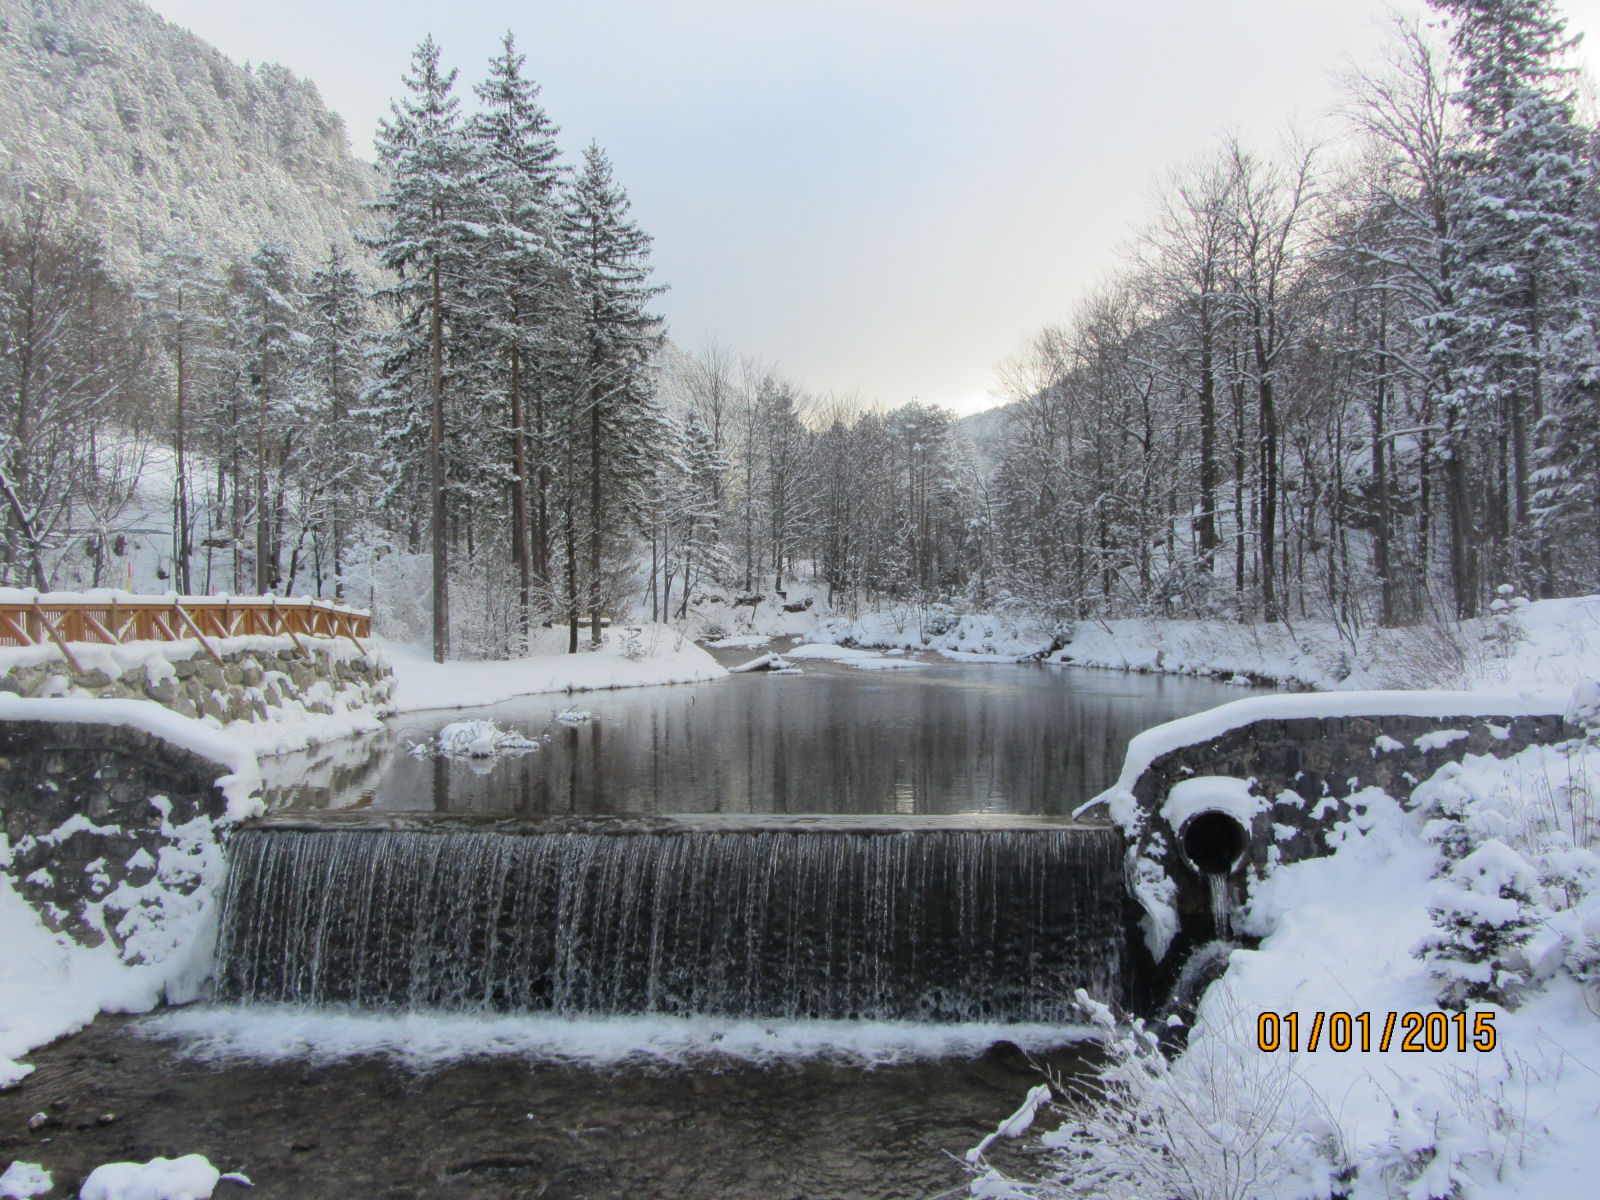 The Zavrsnica stream with snow around